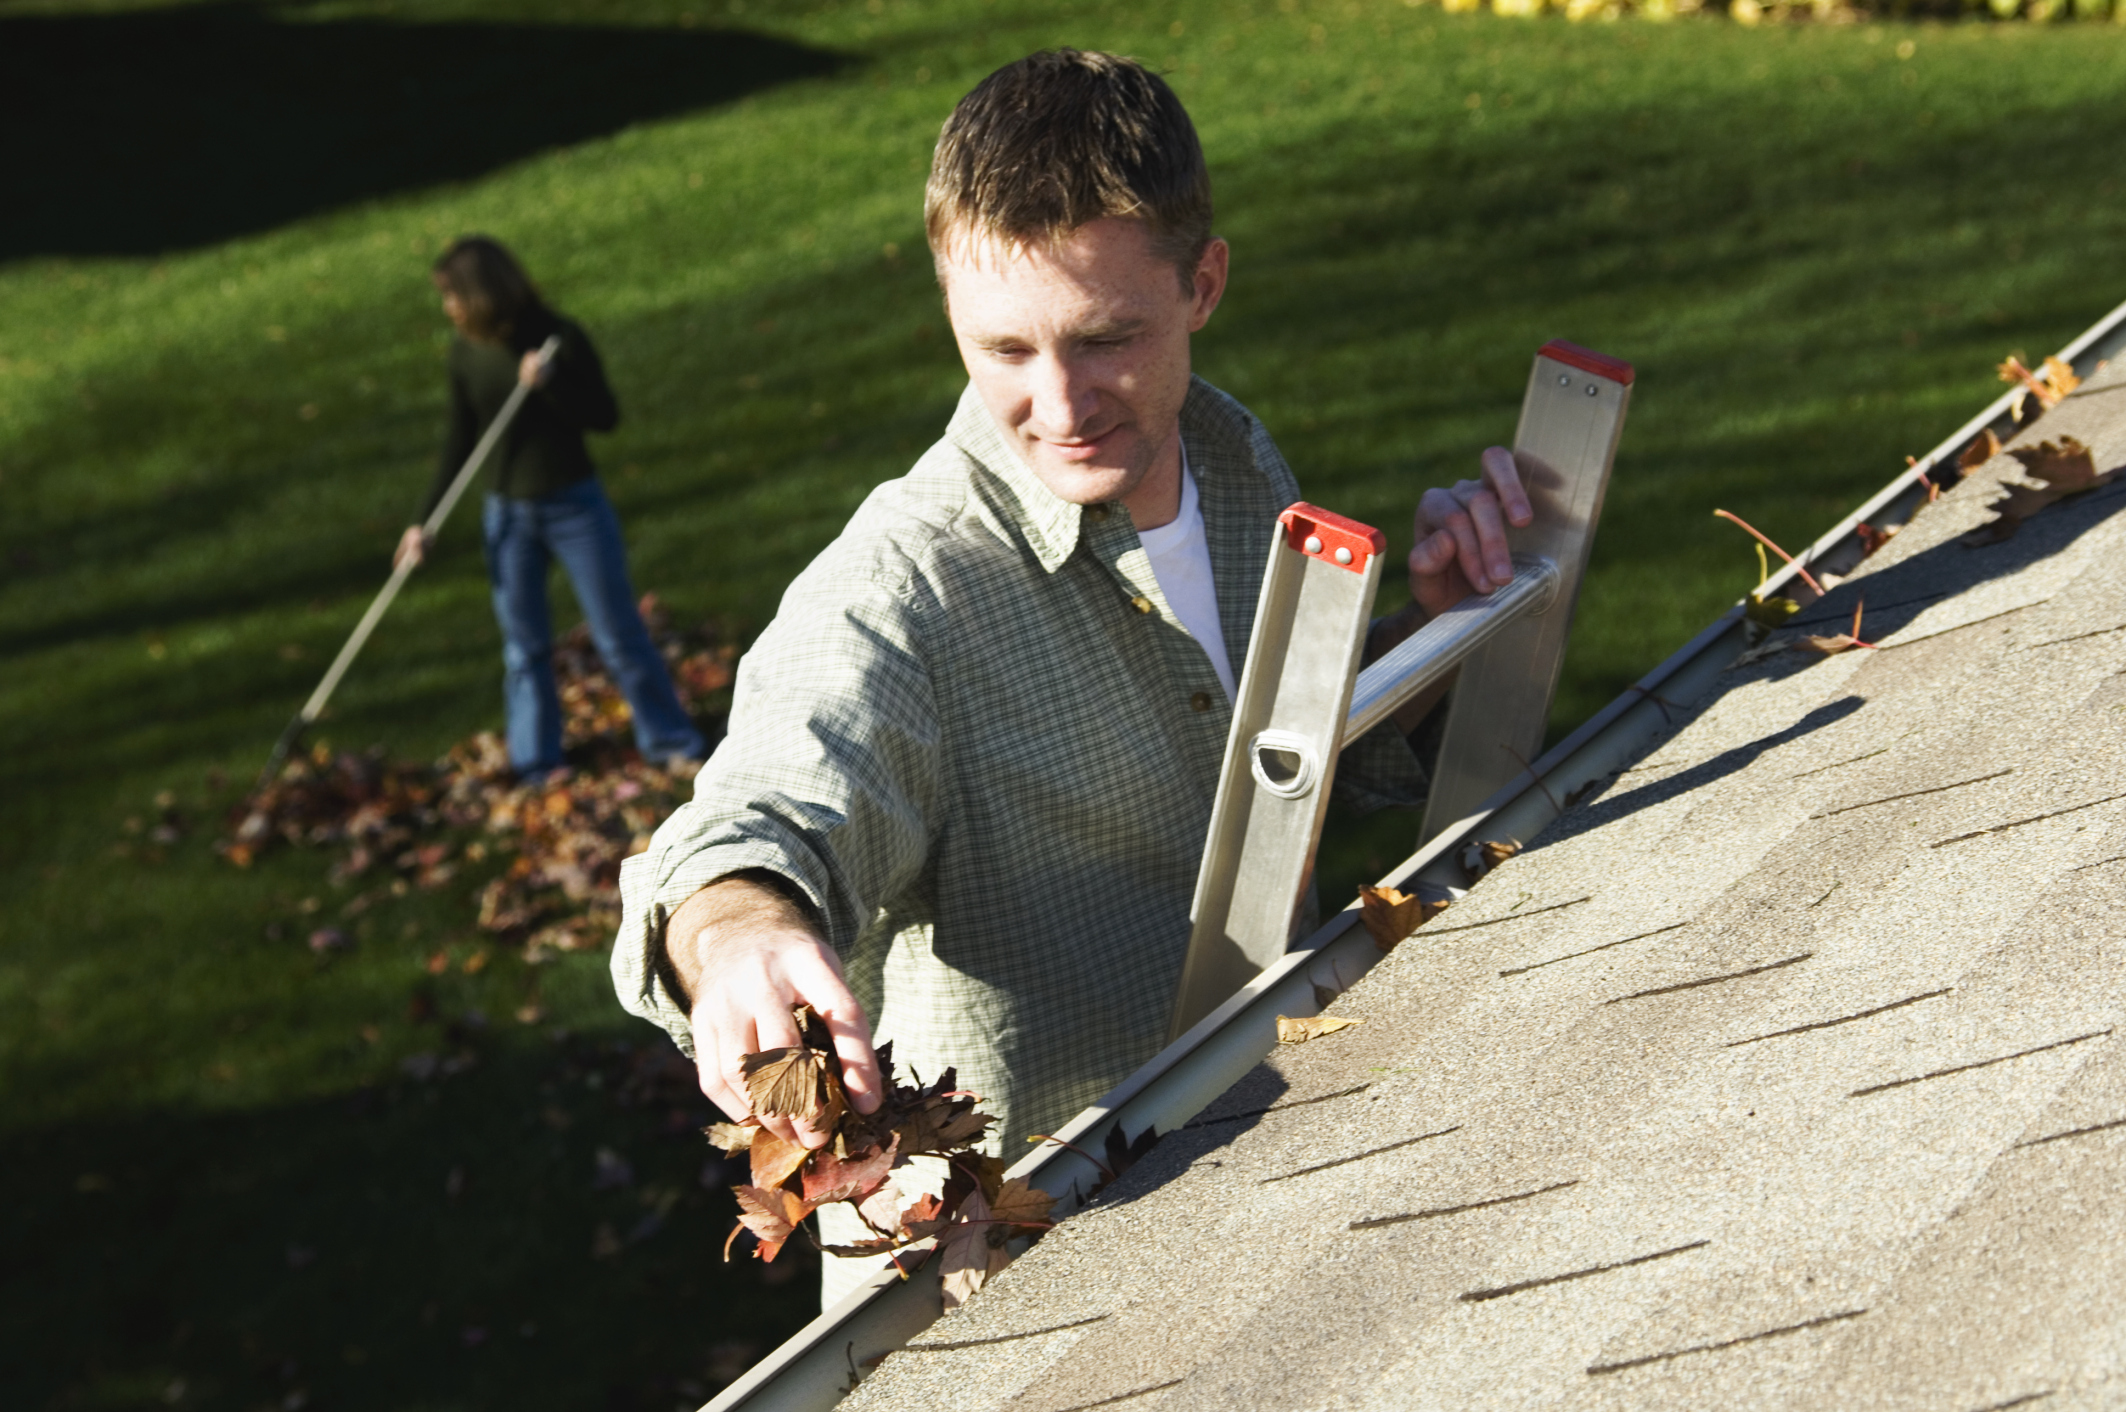 Top 3 reasons why you should get your gutter cleaned